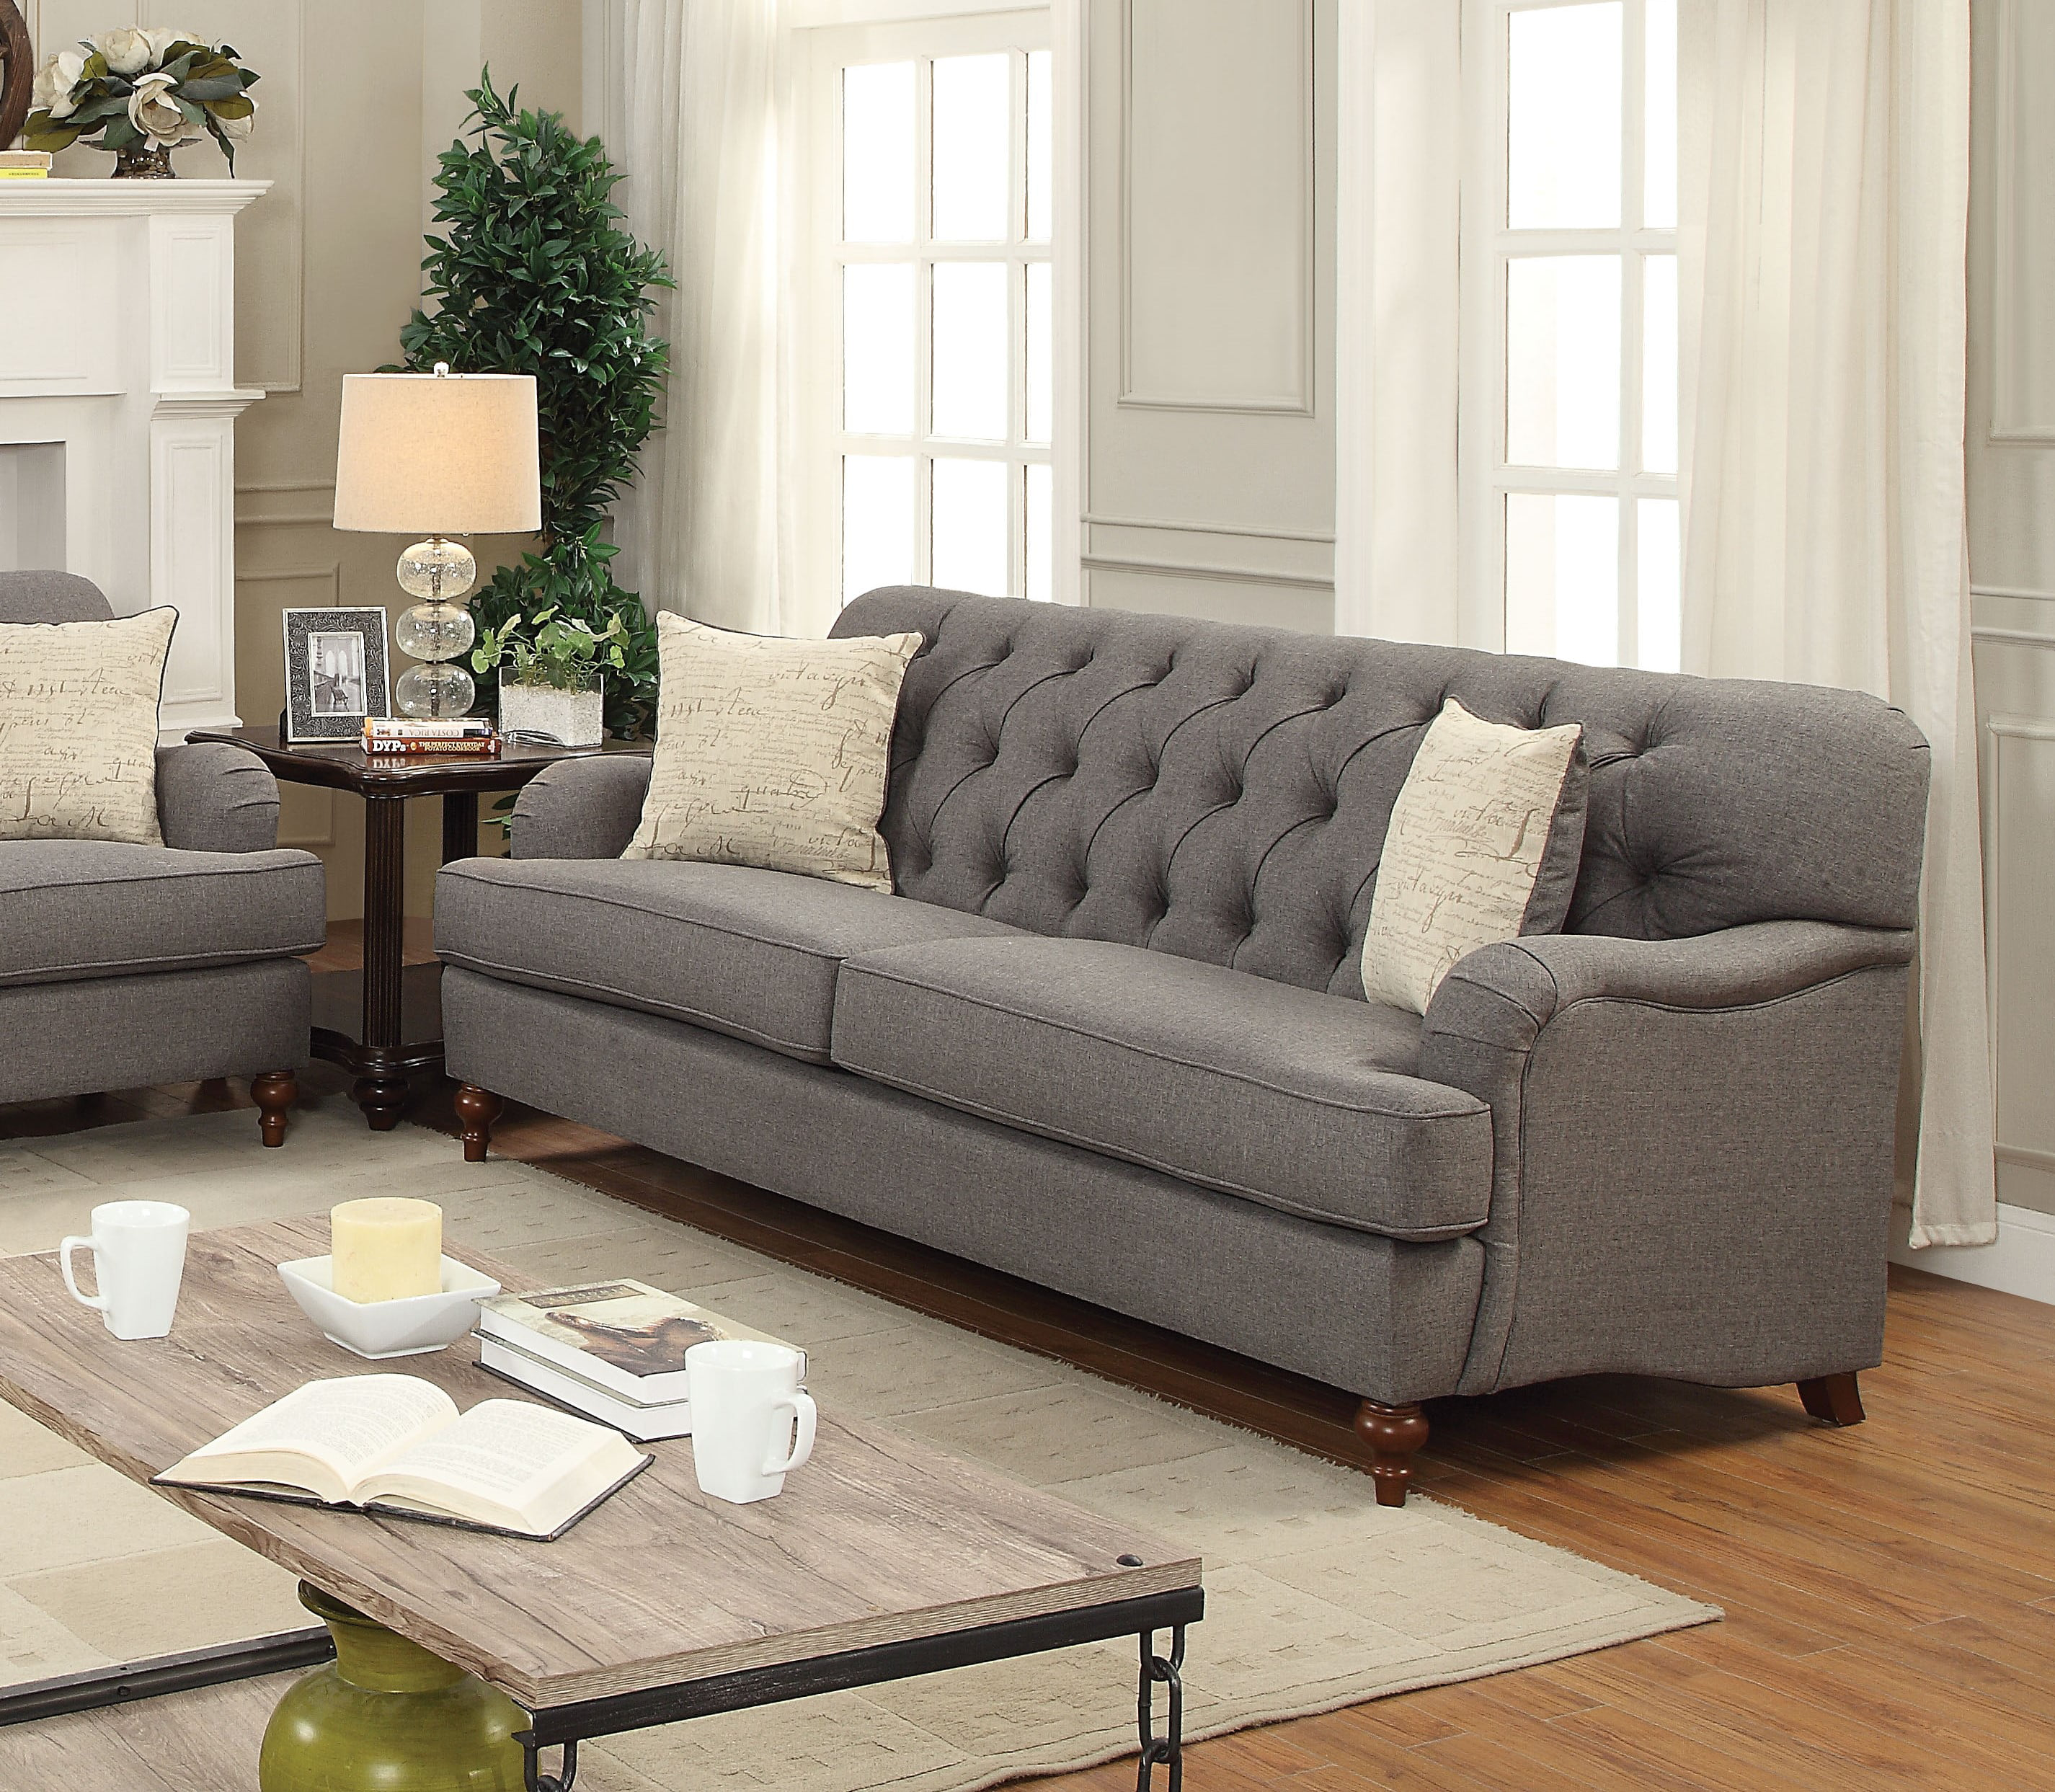 """ACME Alianza 85"""" Sofa with 2 Pillows in Multiple Colors by Acme Furniture"""